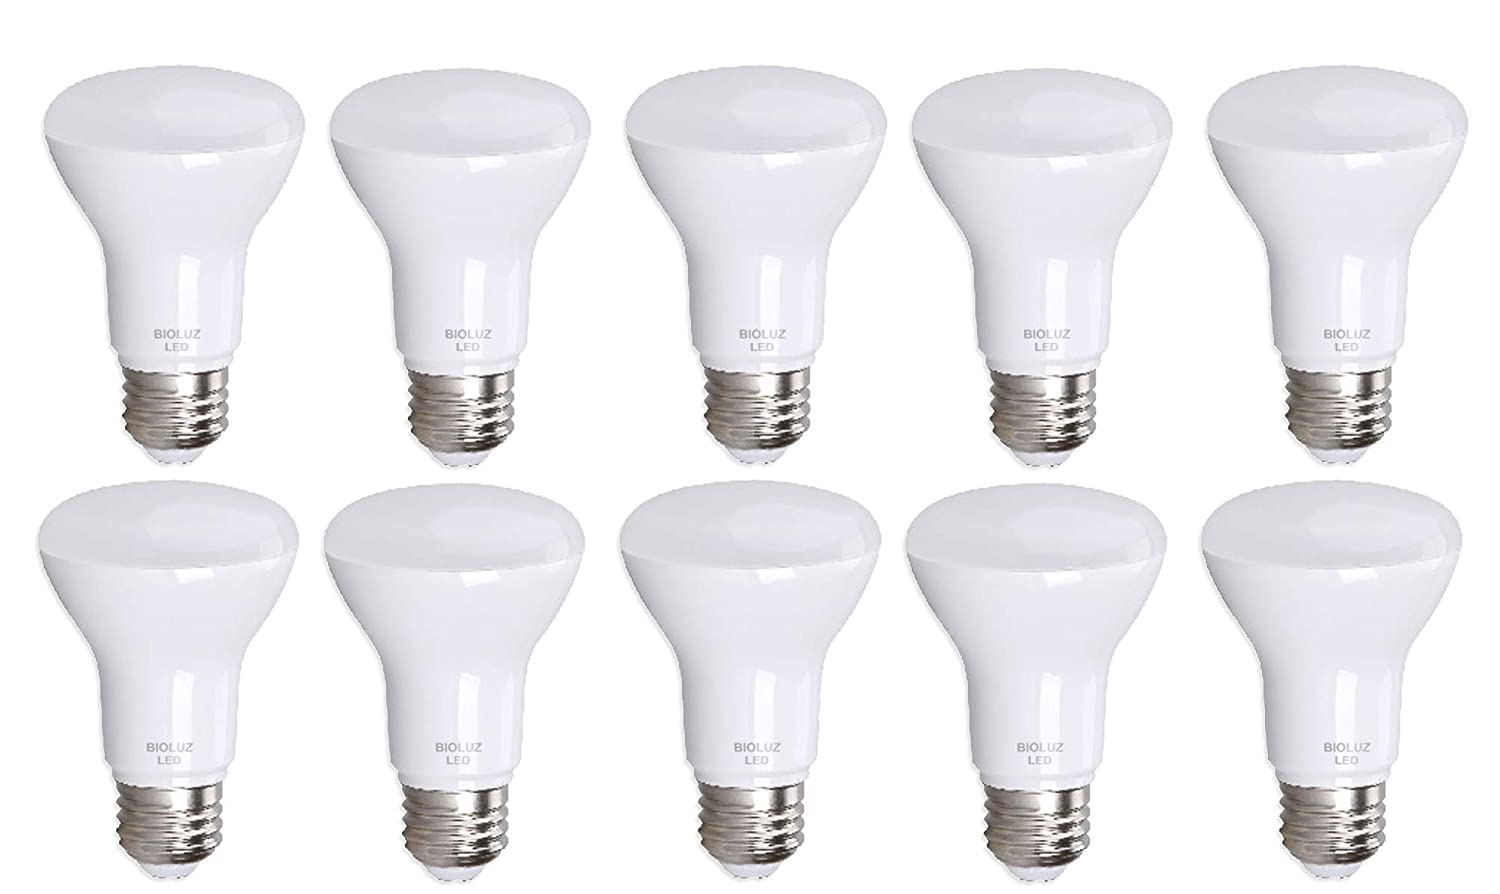 10 Pack Bioluz LED BR20 LED Bulb 2700K Warm White 90 CRI Dimmable UL-Listed CEC JA8 Title 24 Compliant 525 Lumen Indoor/Outdoor Floodlamp (Pack of 10)